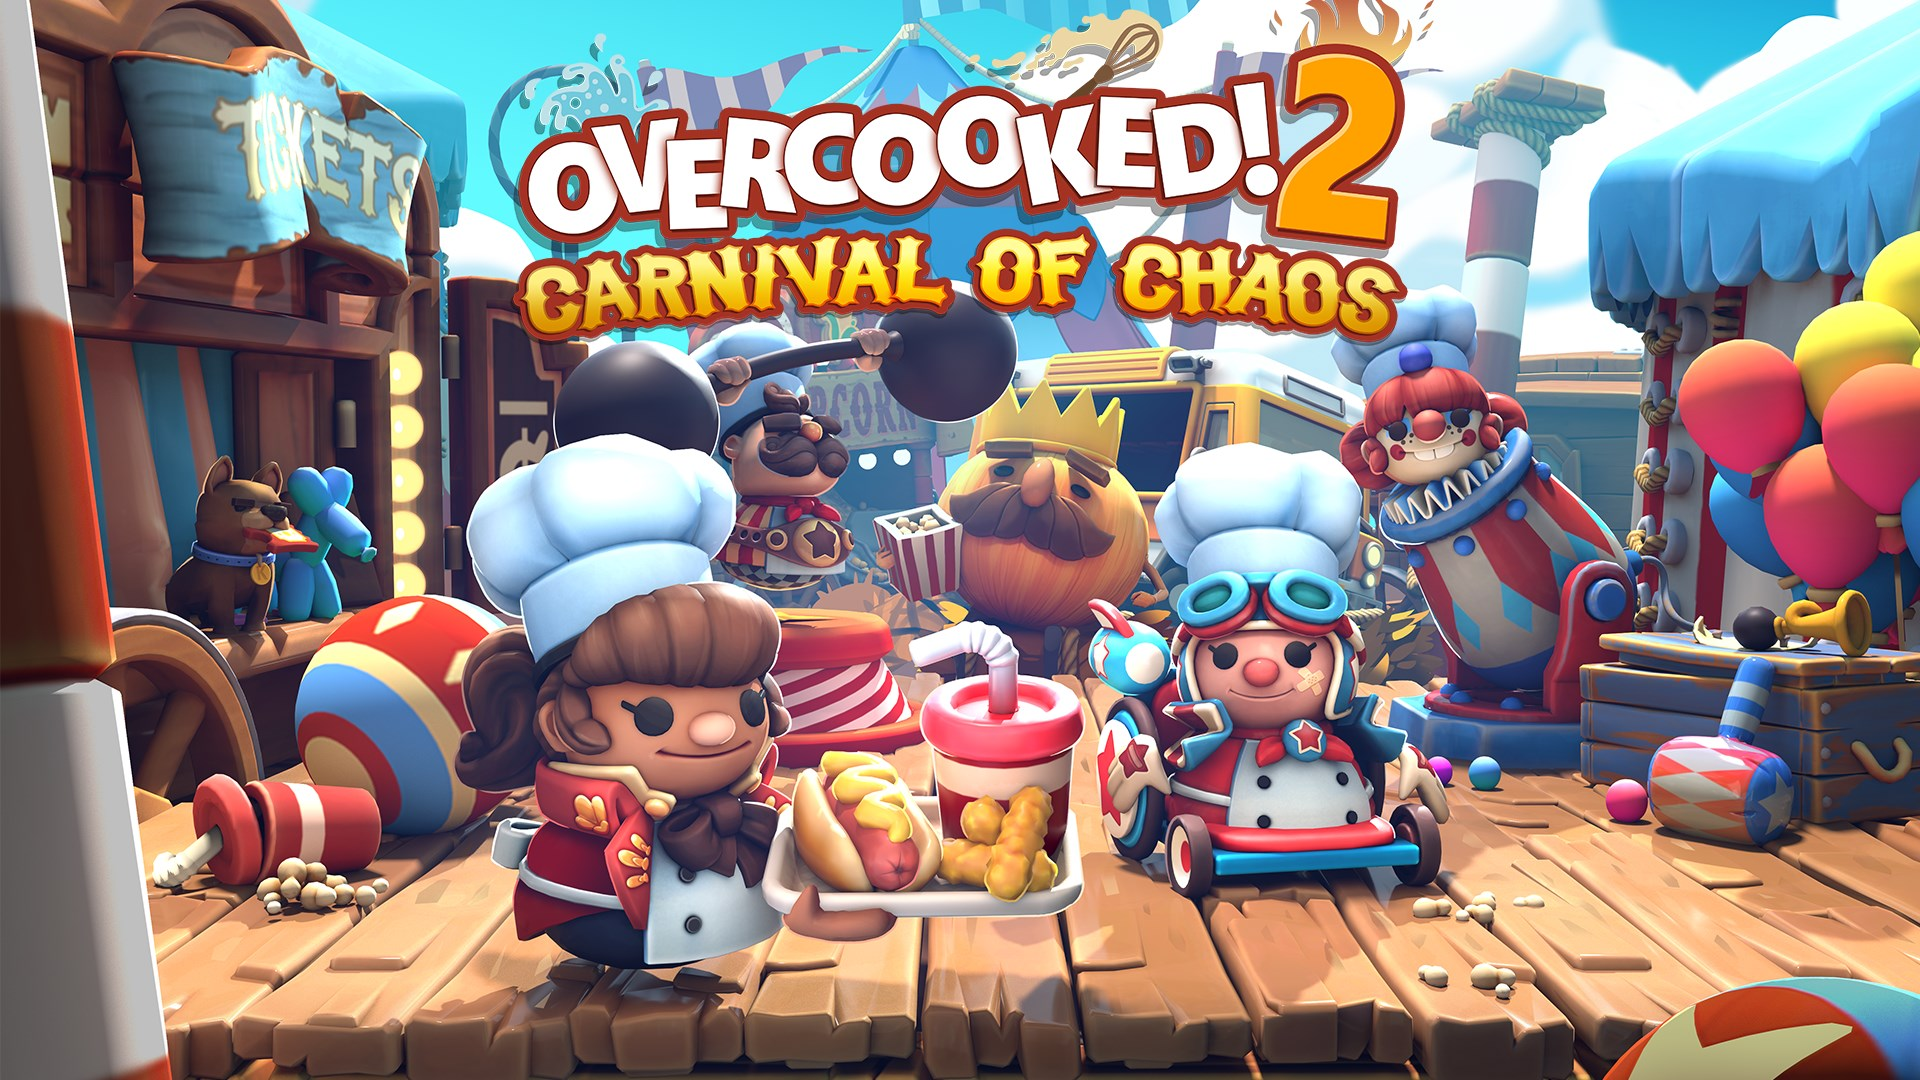 Overcooked 2: Carnival of Chaos